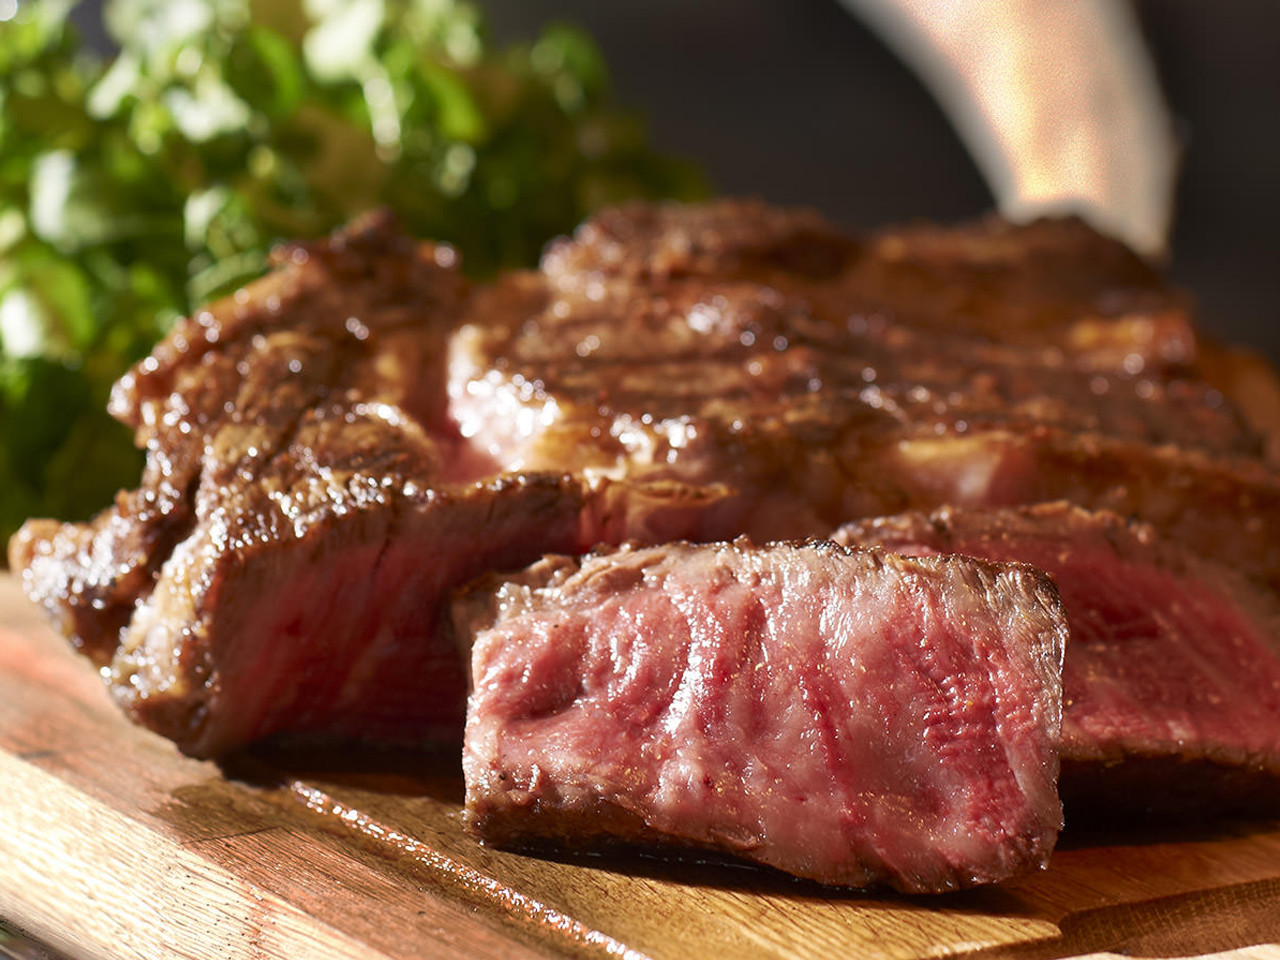 An iconic steakhouse featuring the finest ingredients and top-quality meats that are dynamically presented.